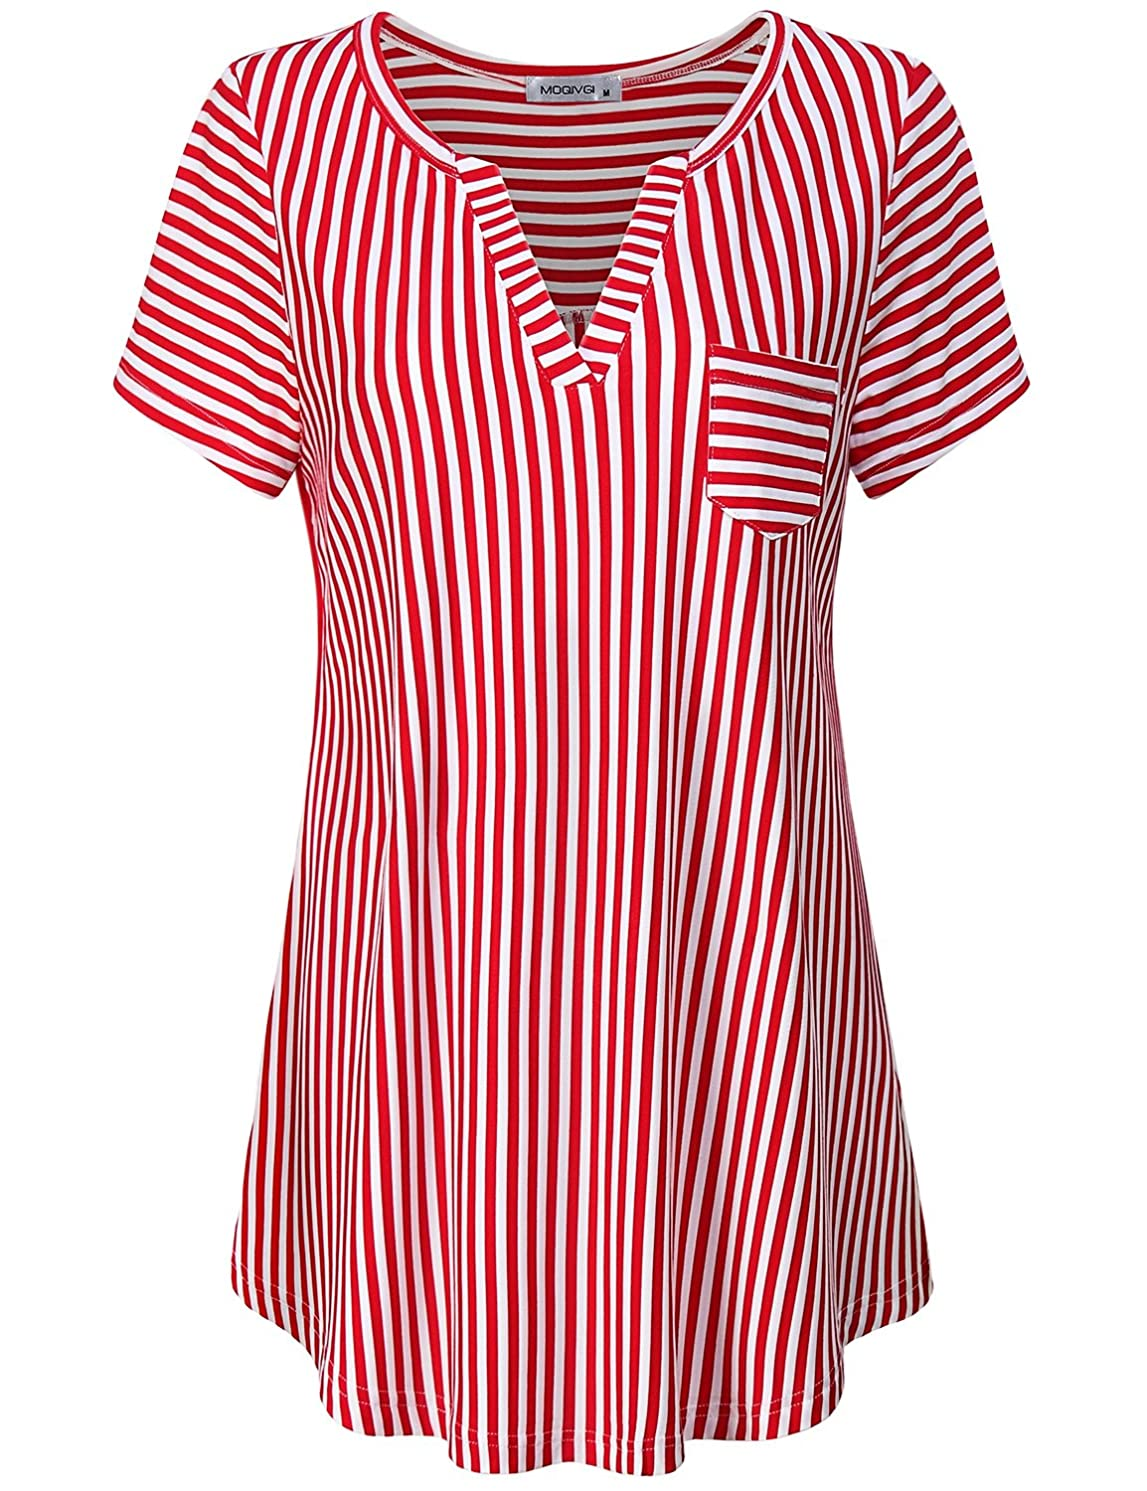 MOQIVGI Women's Summer Stripe Vneck Short Sleeve Blouse Tops